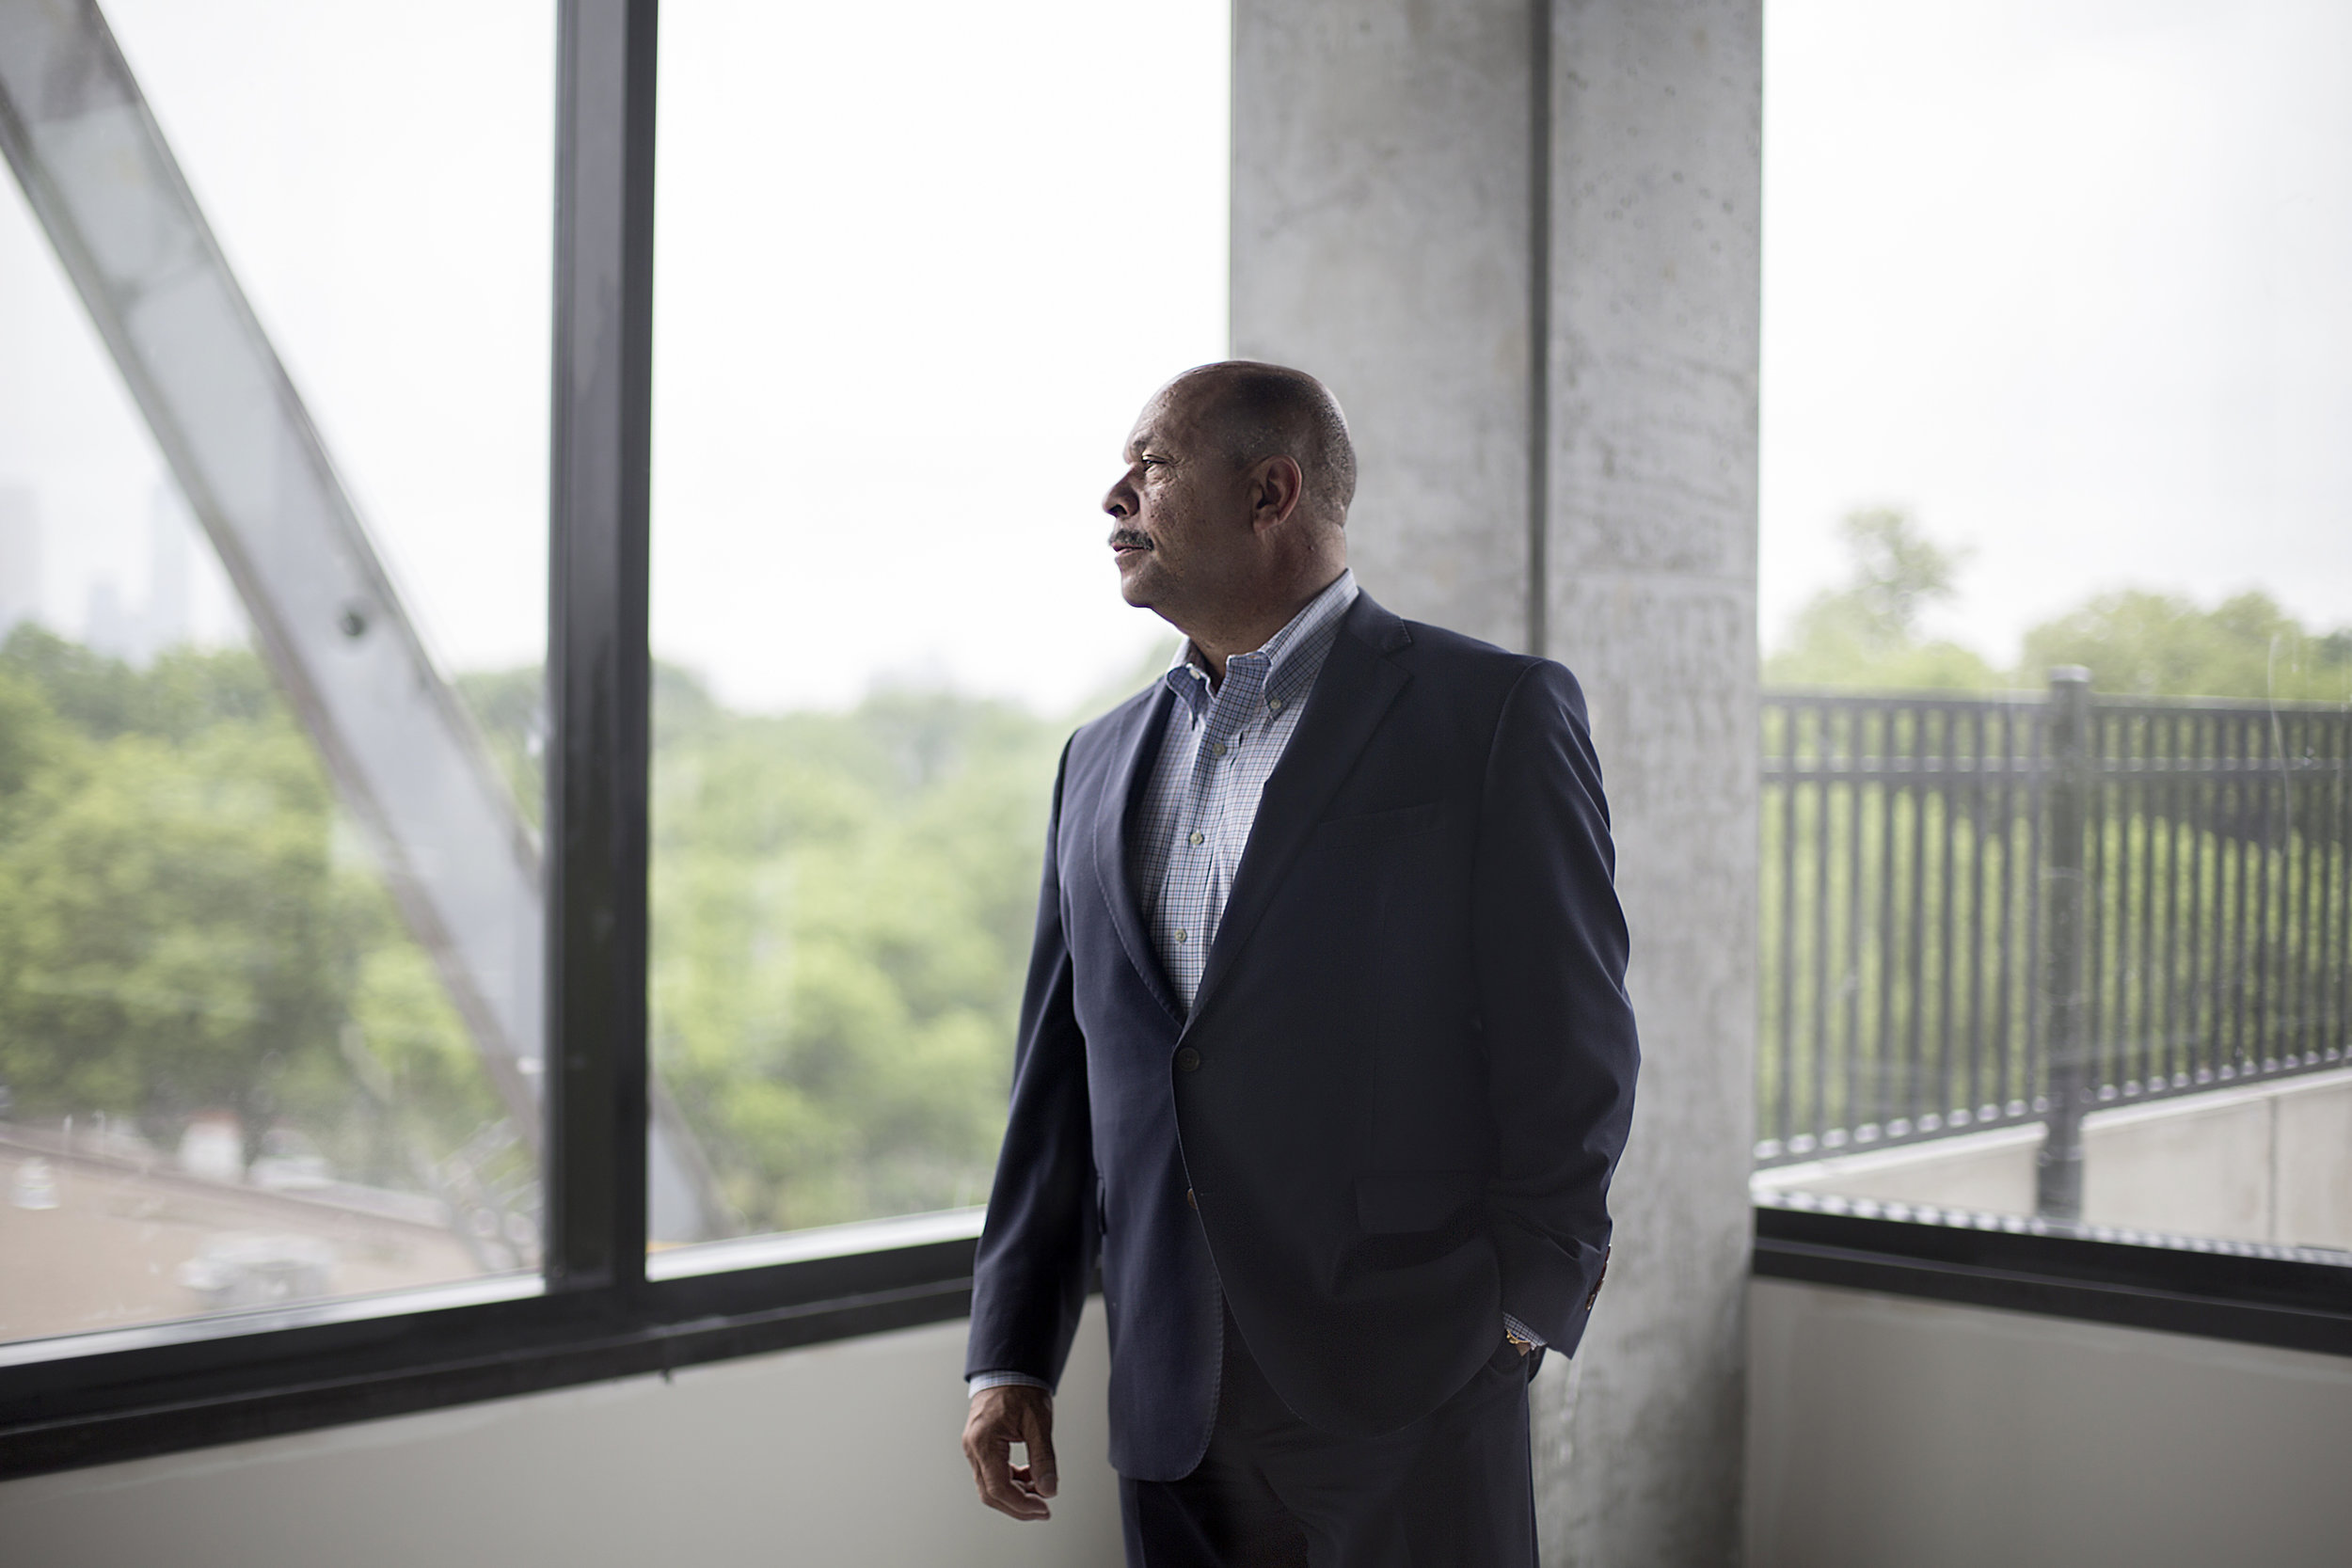 THOR Companies founder and chairman Richard Copeland is excited to have his first office with a view in THOR's new headquarters building.